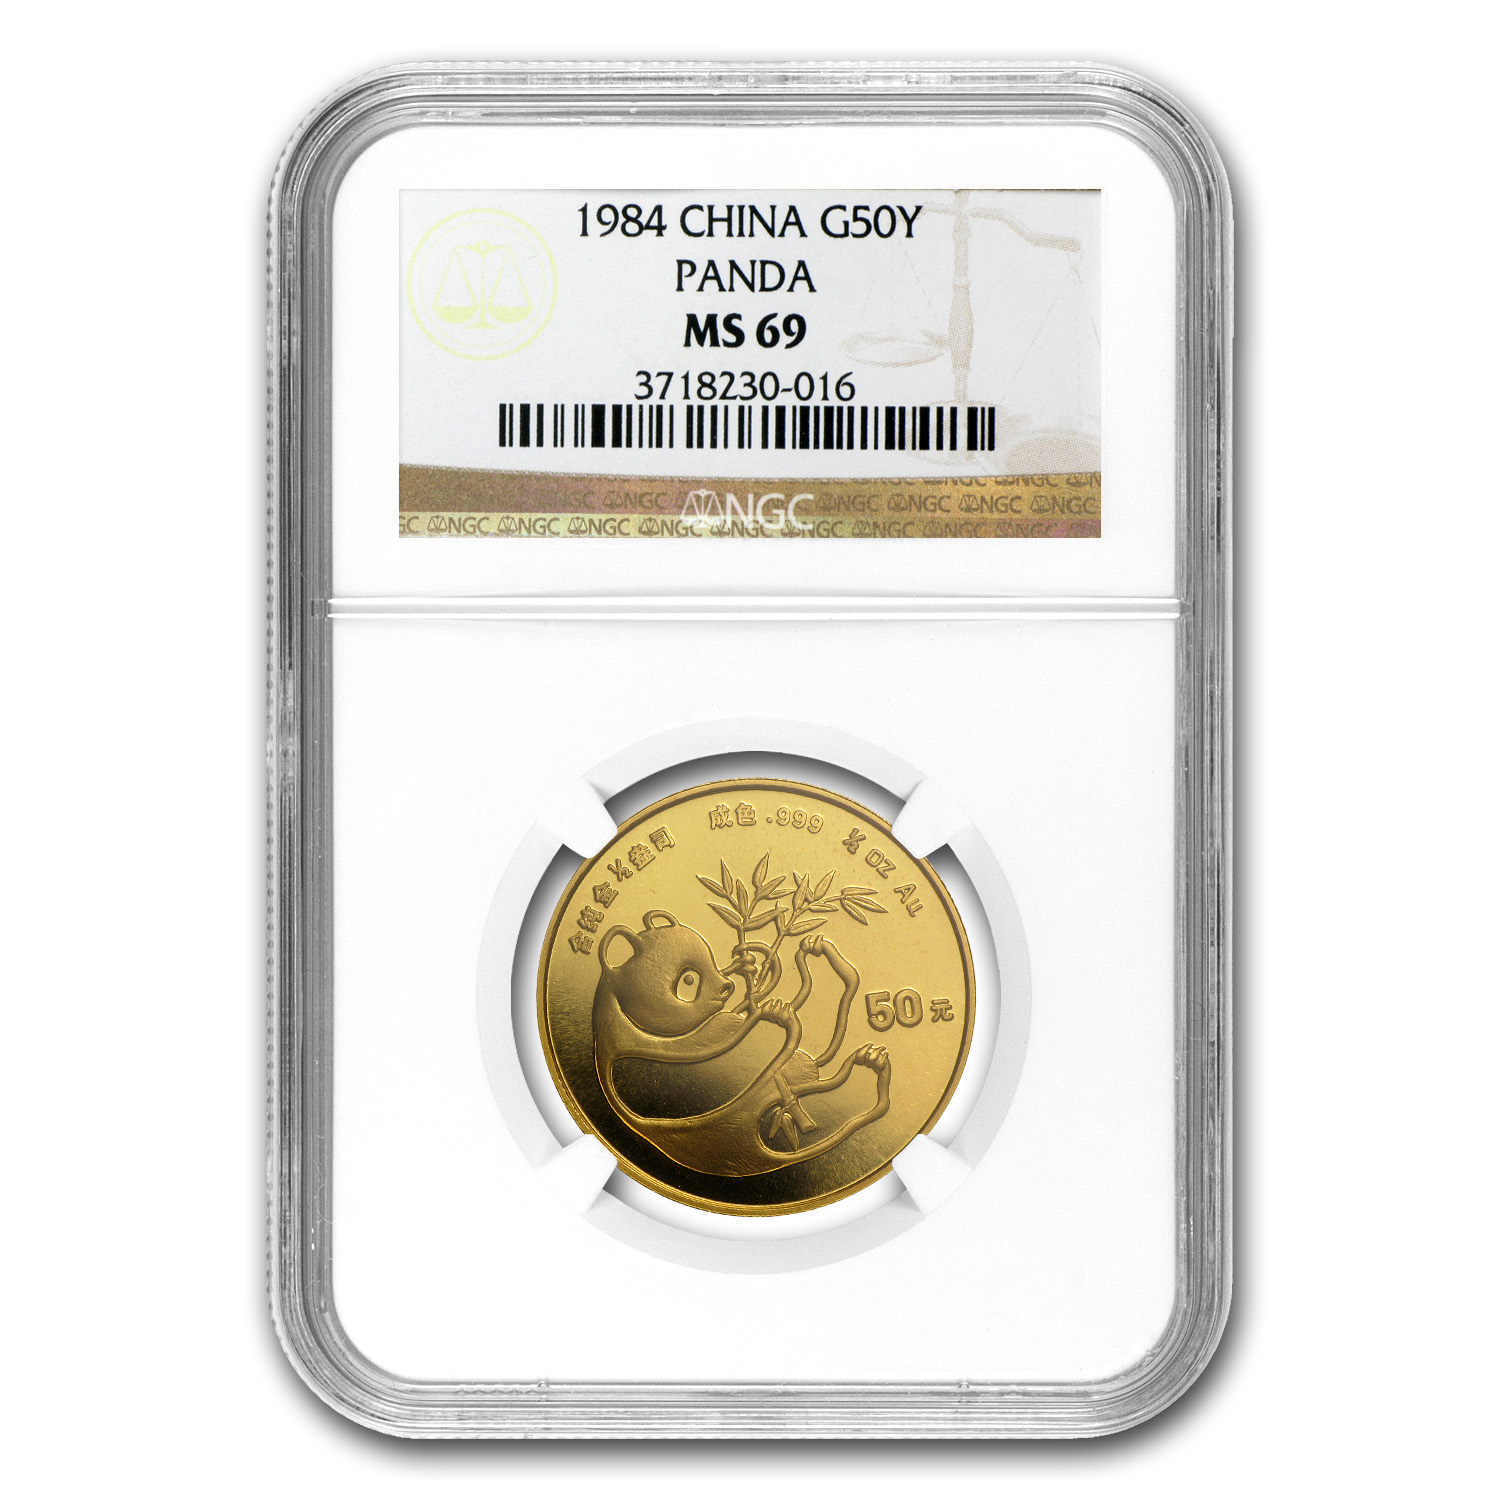 1984 China 1/2 oz Gold Panda MS-69 NGC